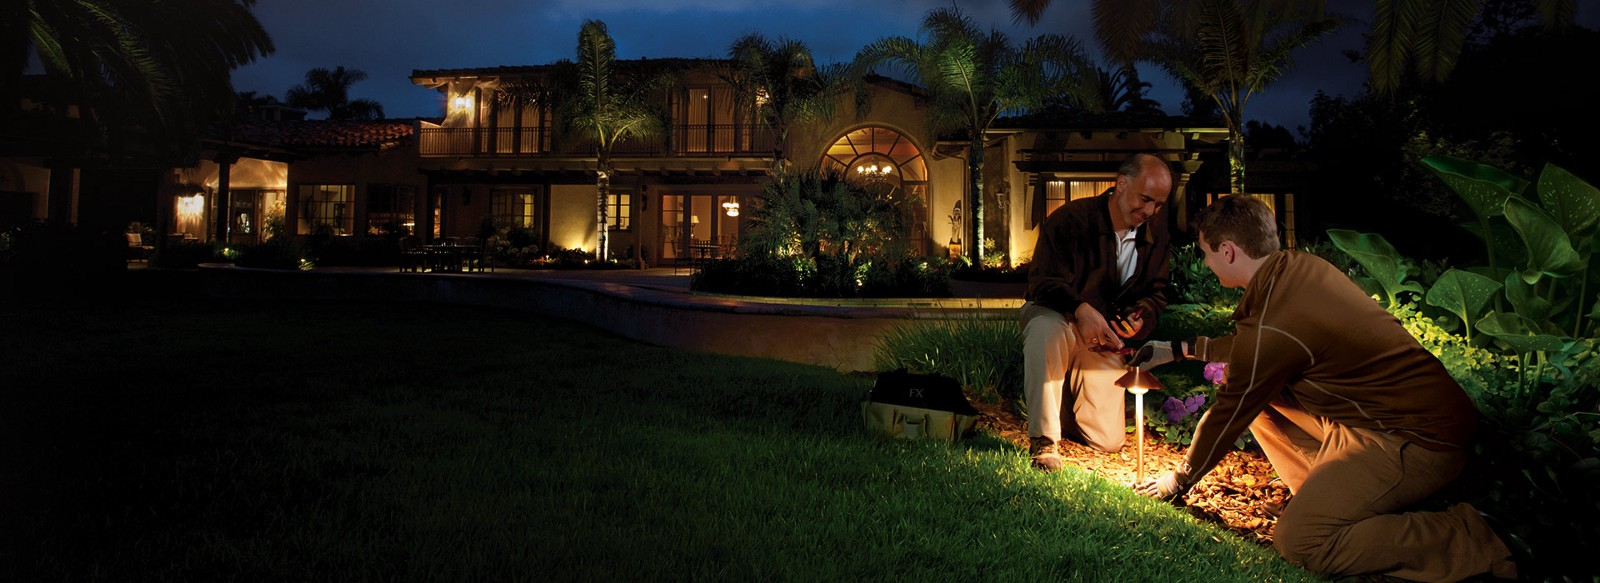 How To Install Low Voltage Landscape Lighting